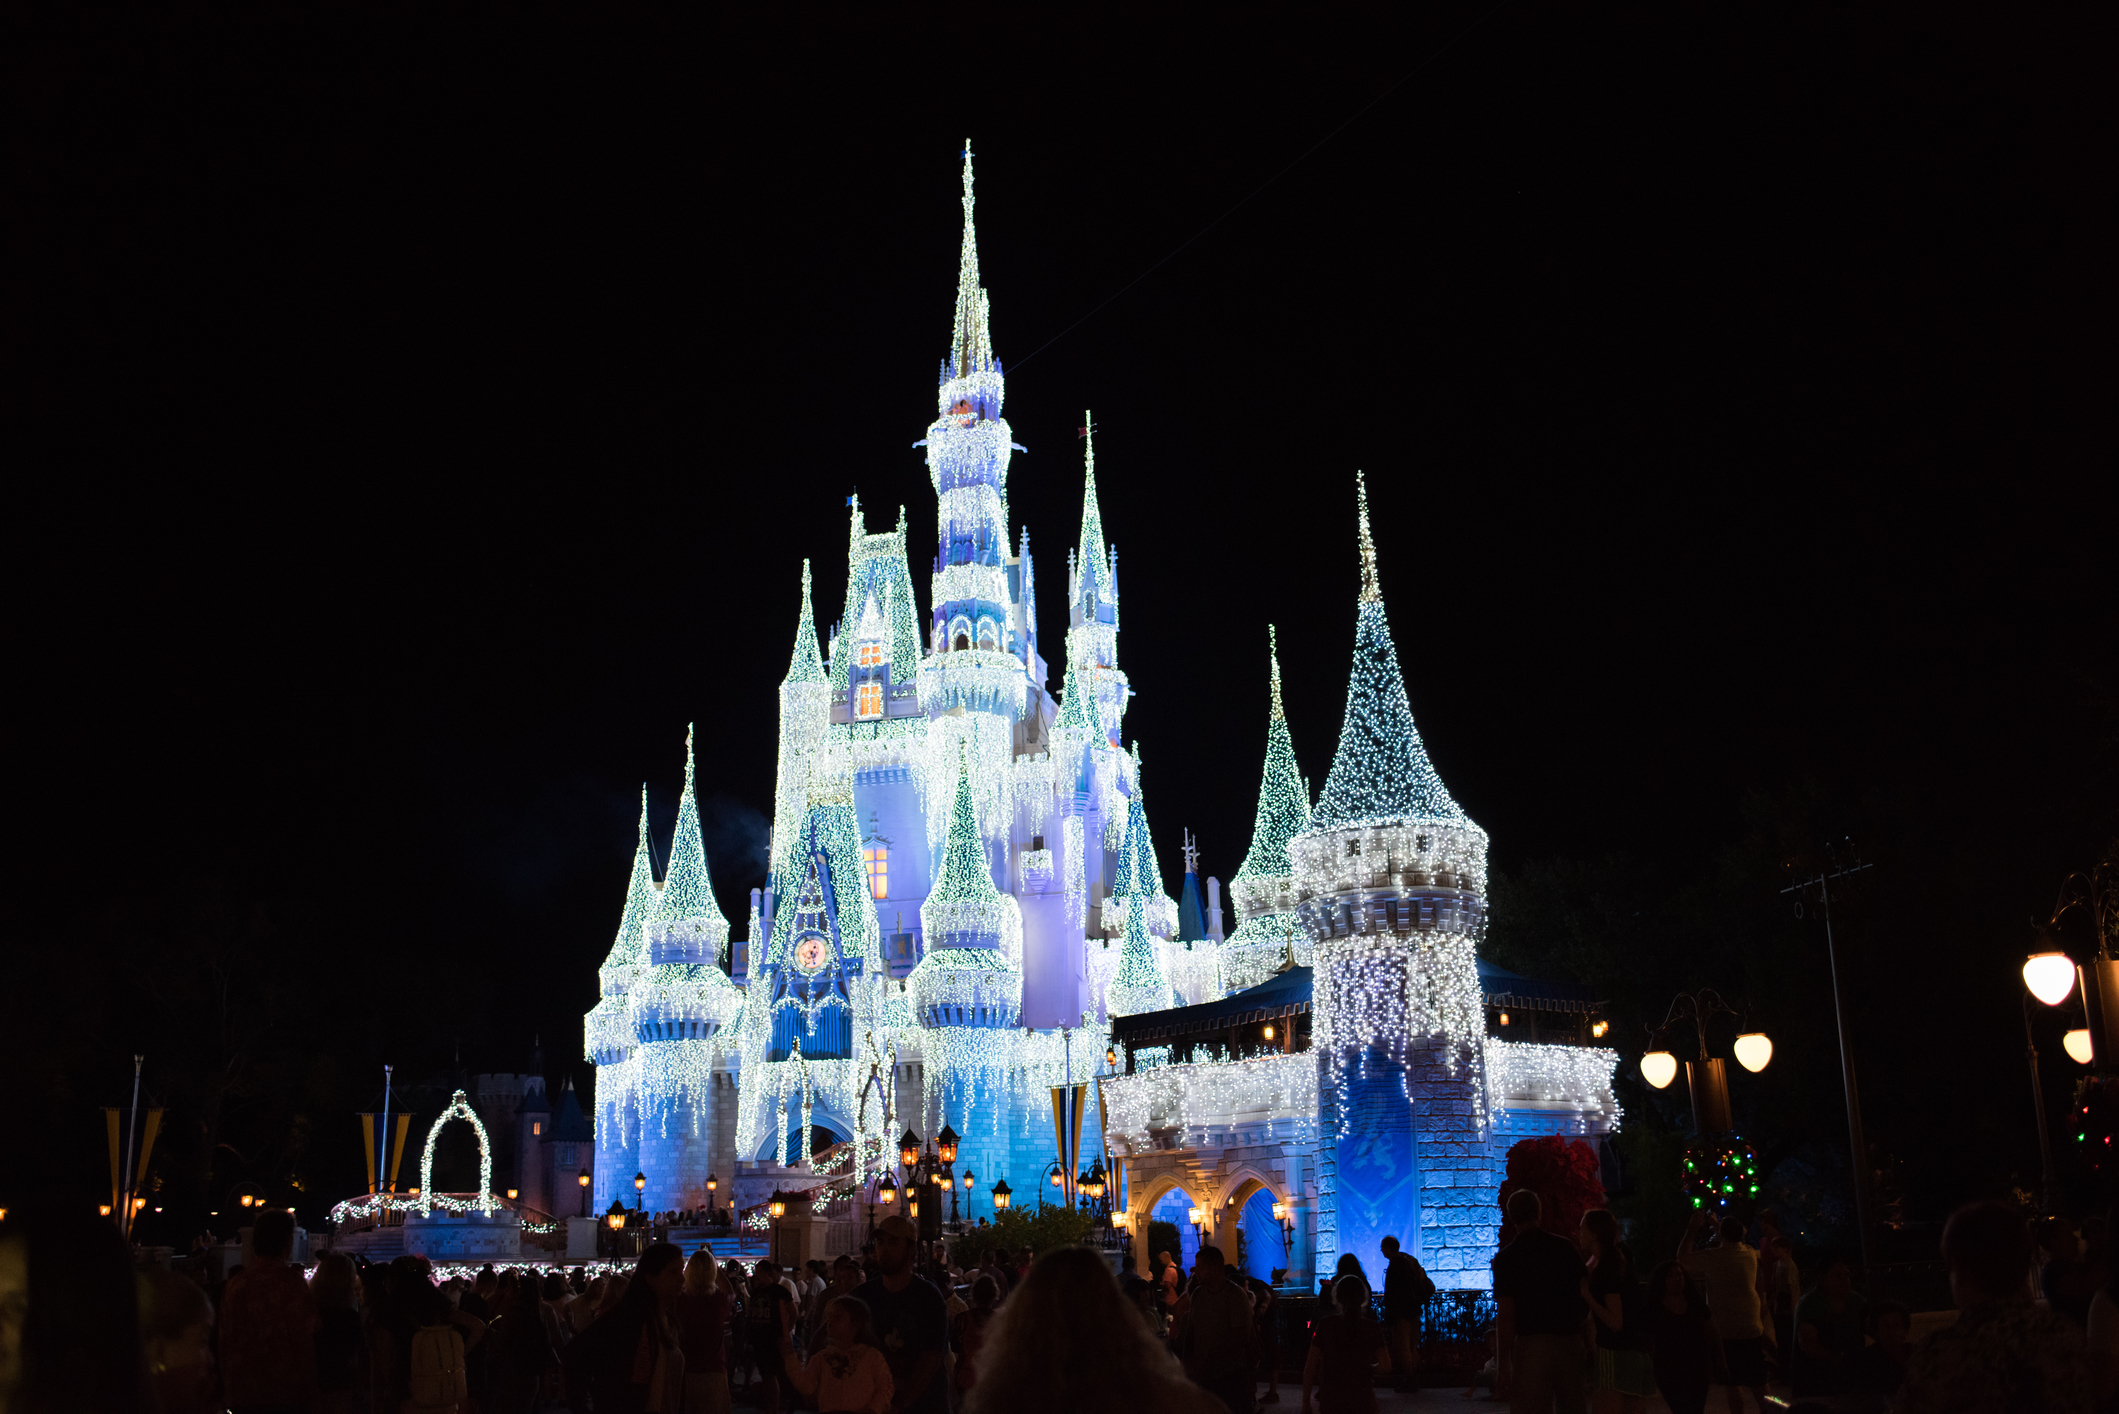 Cinderella-Castle-Disney-night.jpg?mtime=20181003121918#asset:103389